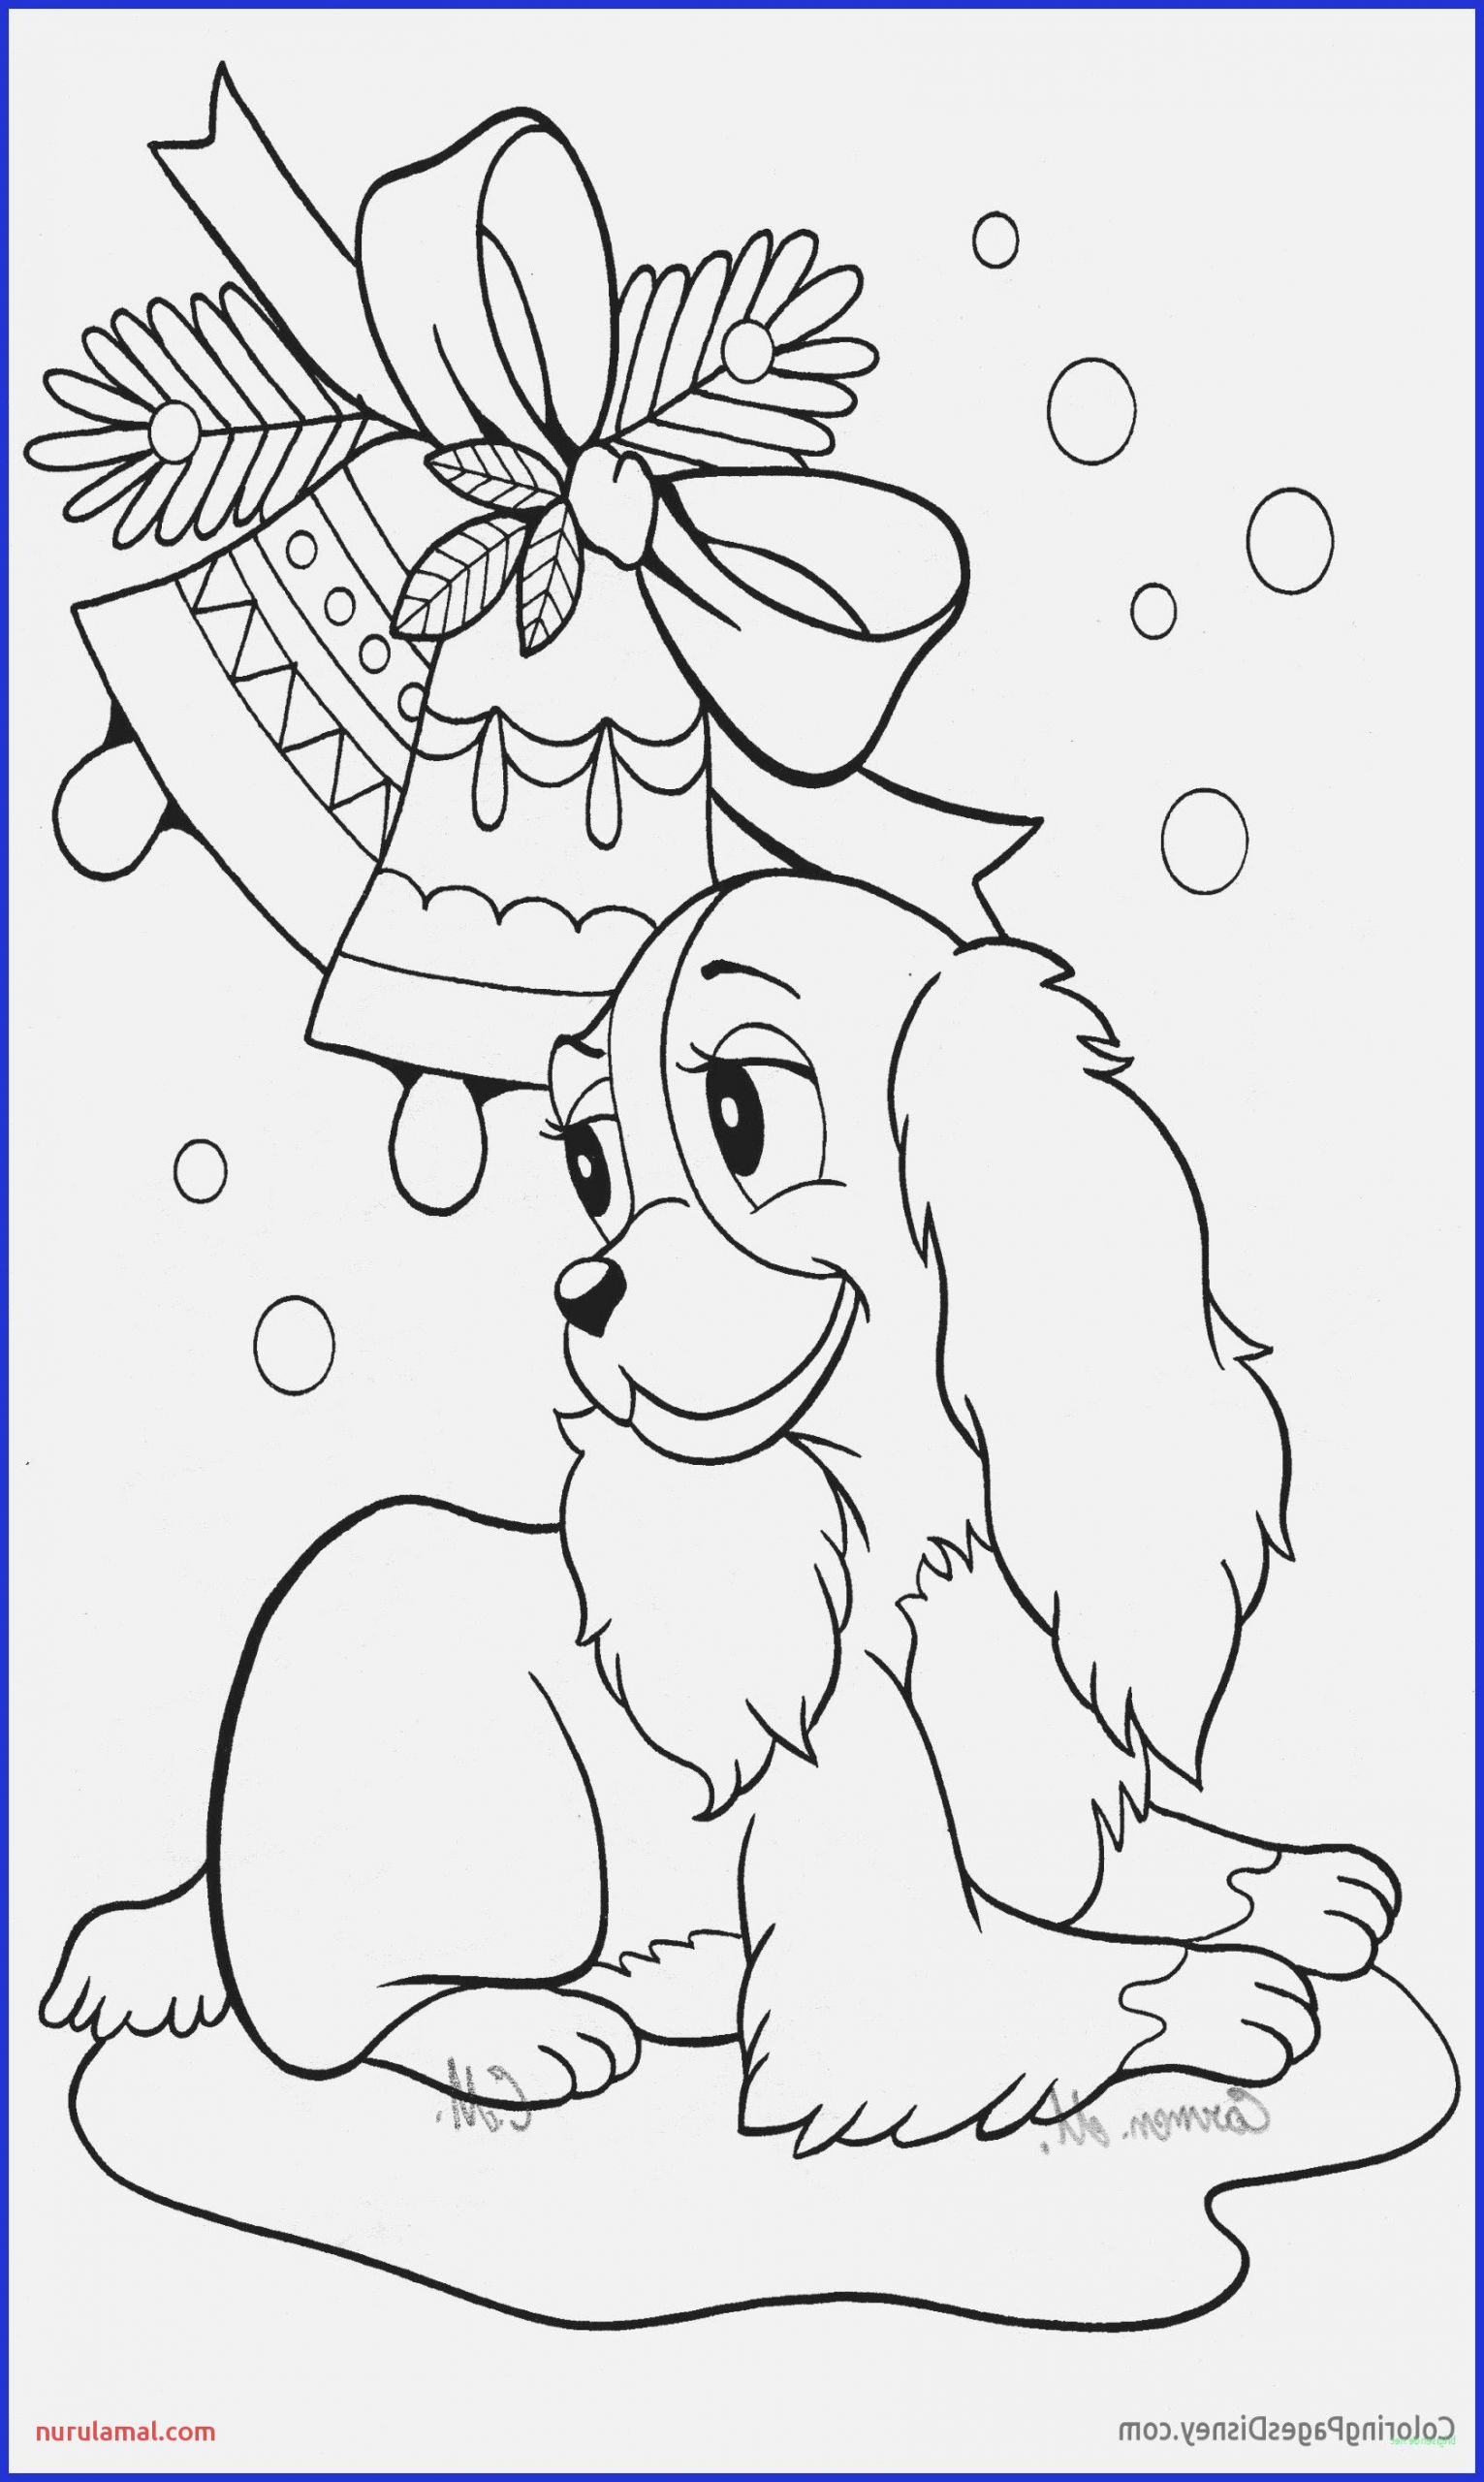 coloring page for adults fairy cool image unique free coloring pages trolls of coloring page for adults fairy